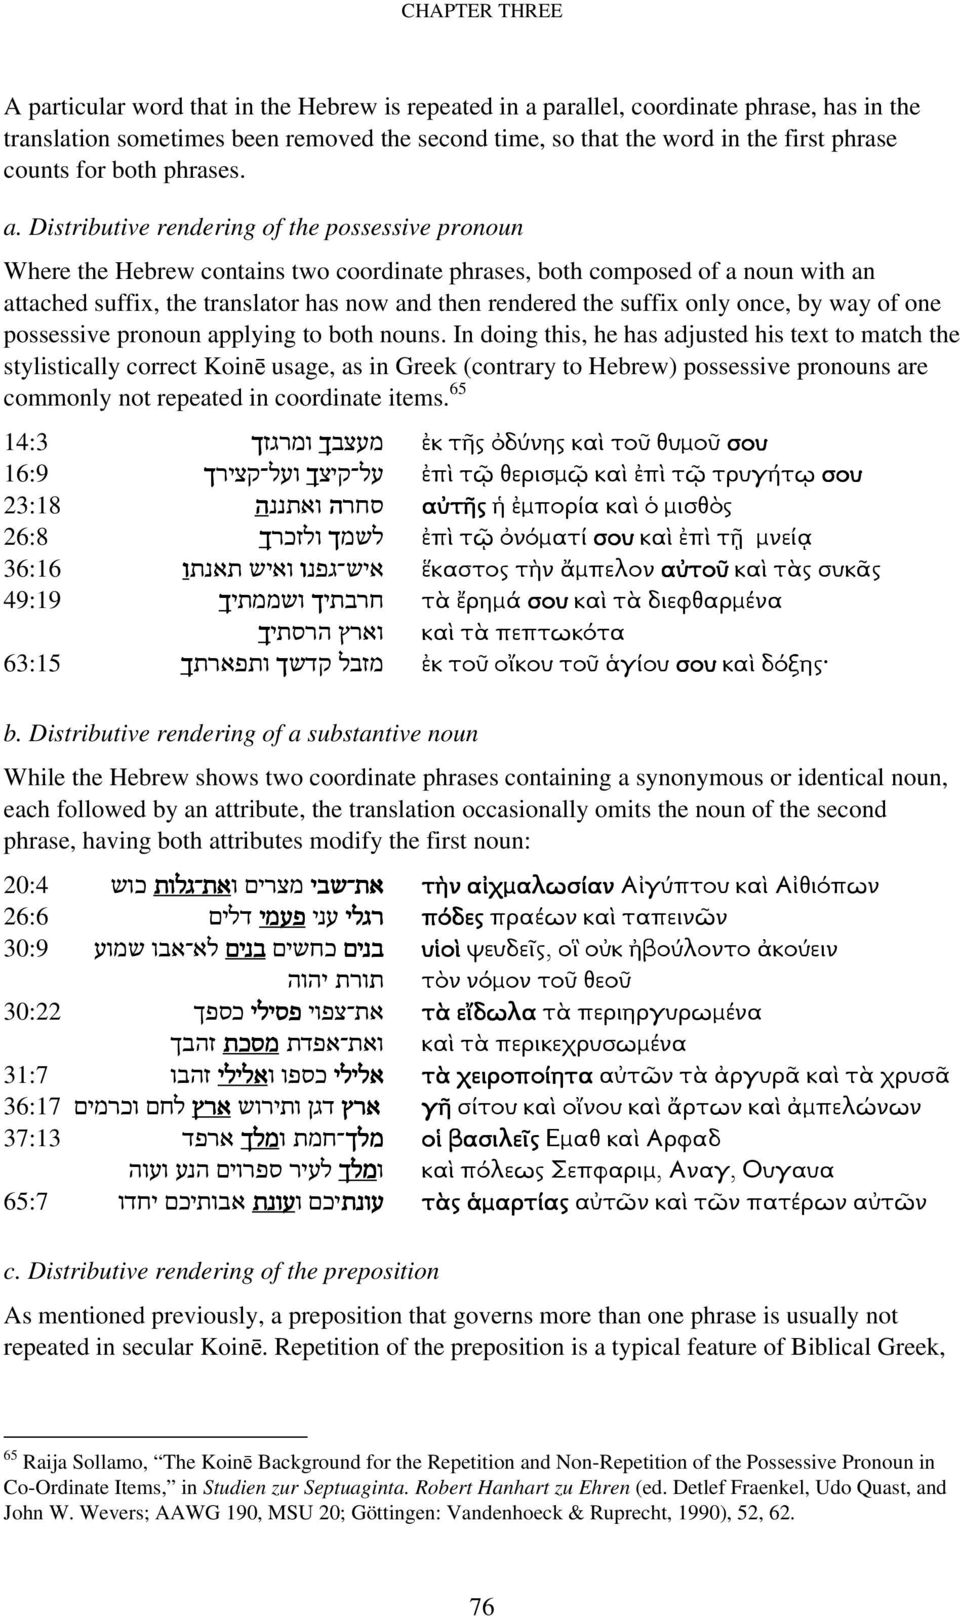 Distributive rendering of the possessive pronoun Where the Hebrew contains two coordinate phrases, both composed of a noun with an attached suffix, the translator has now and then rendered the suffix